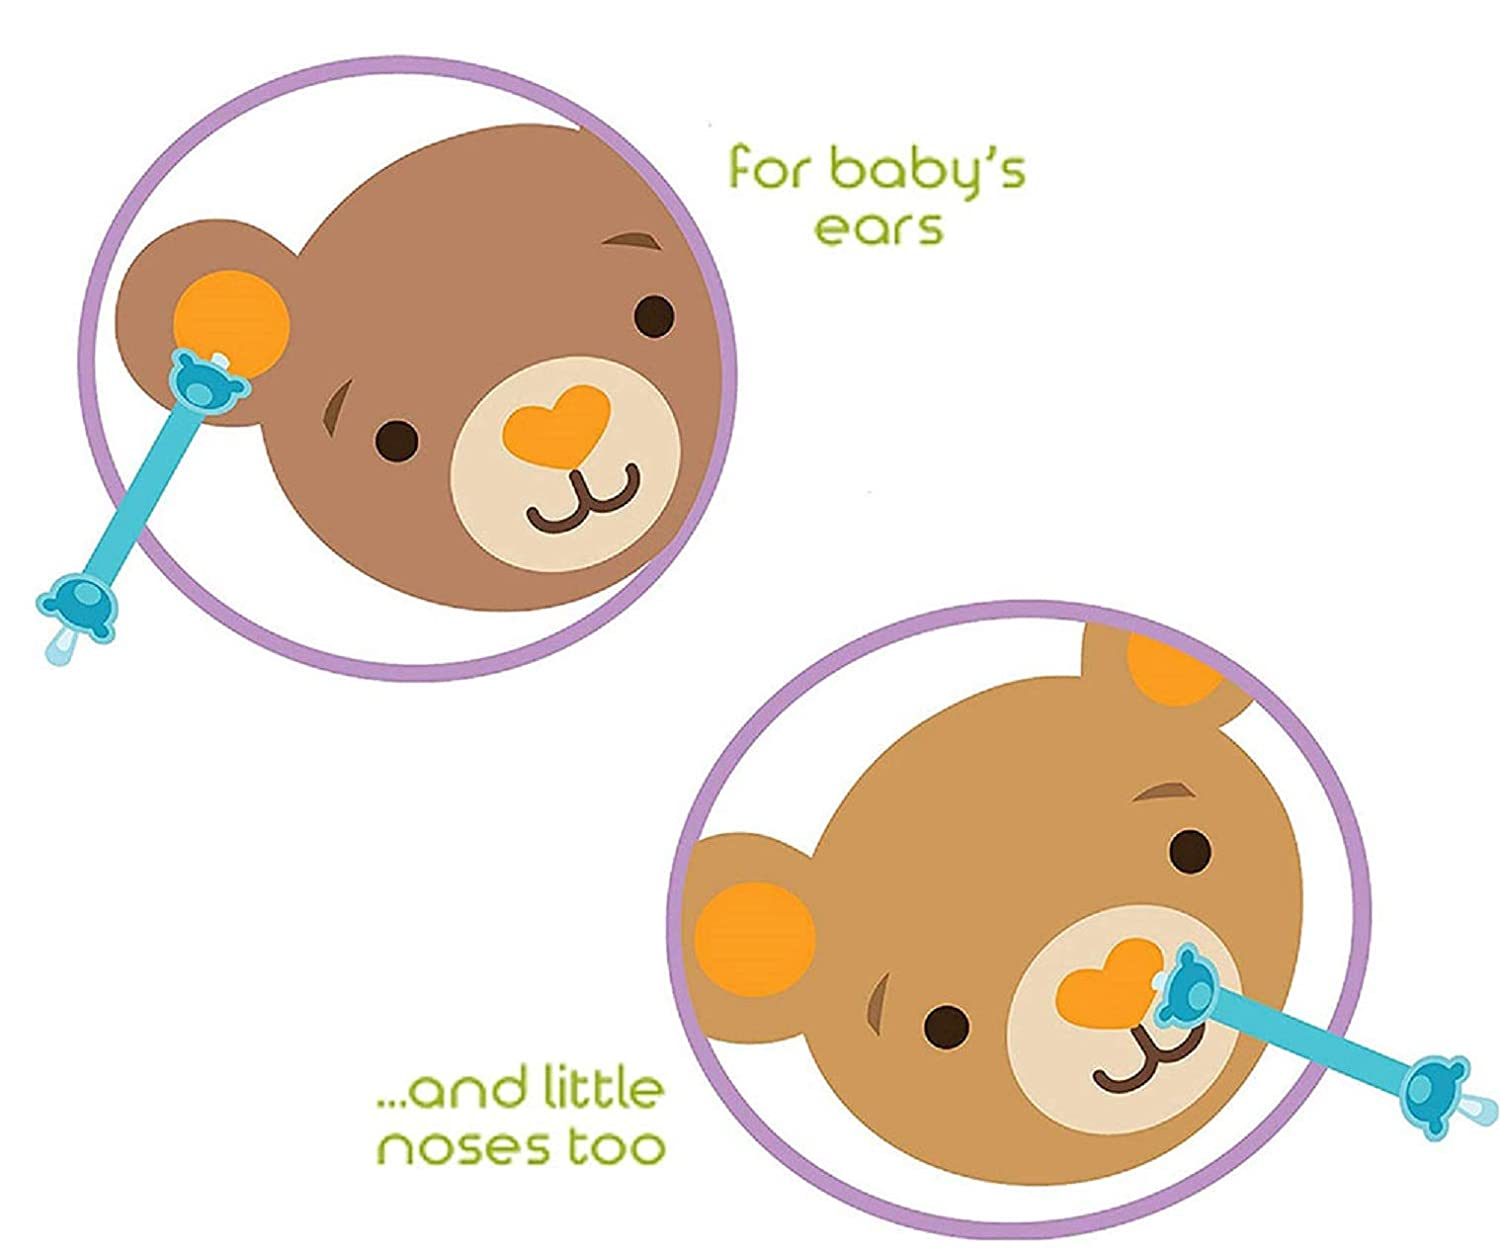 Oogiebear - The Safe Baby Nasal Booger and Ear Cleaner - Baby Shower Gift and Registry Essential Snot Removal Tool, Blue Two Pack